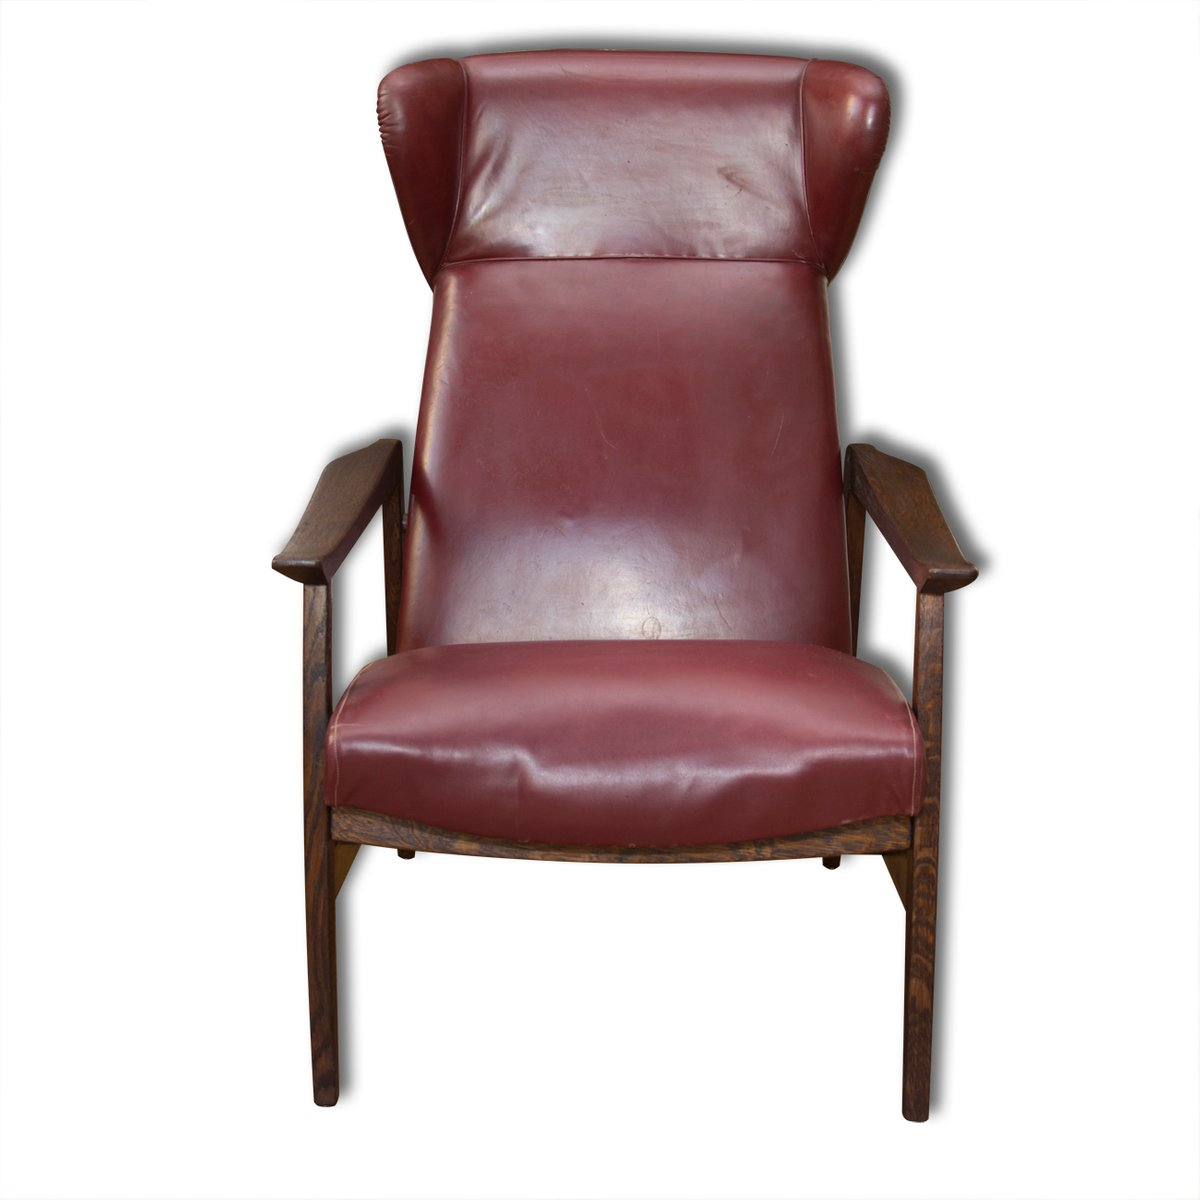 European Leather Adjustable Wingback Chair 1940s For Sale